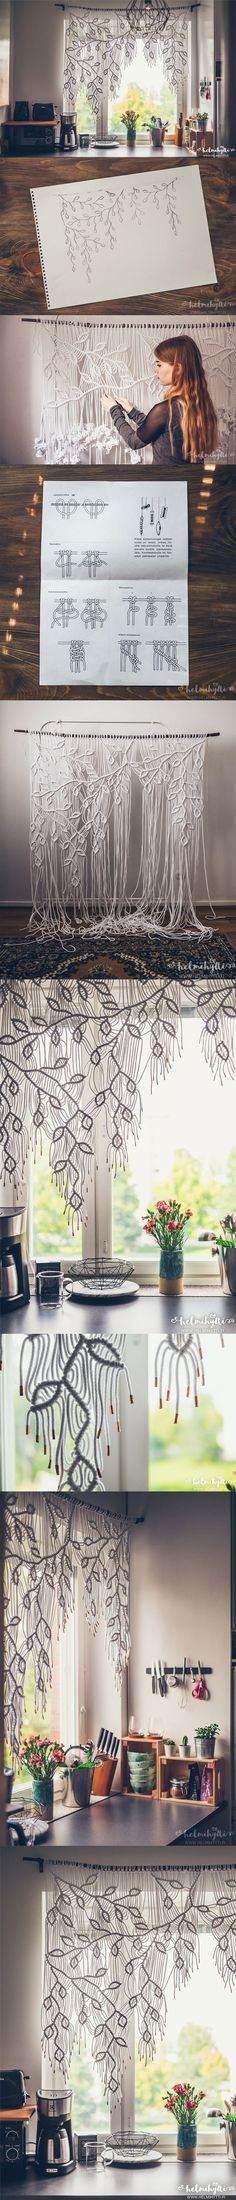 Are you looking for a unique way to add curtains to your space while still letting in natural light? Try these DIY string curtains for a unique look you can makeup on a budget!